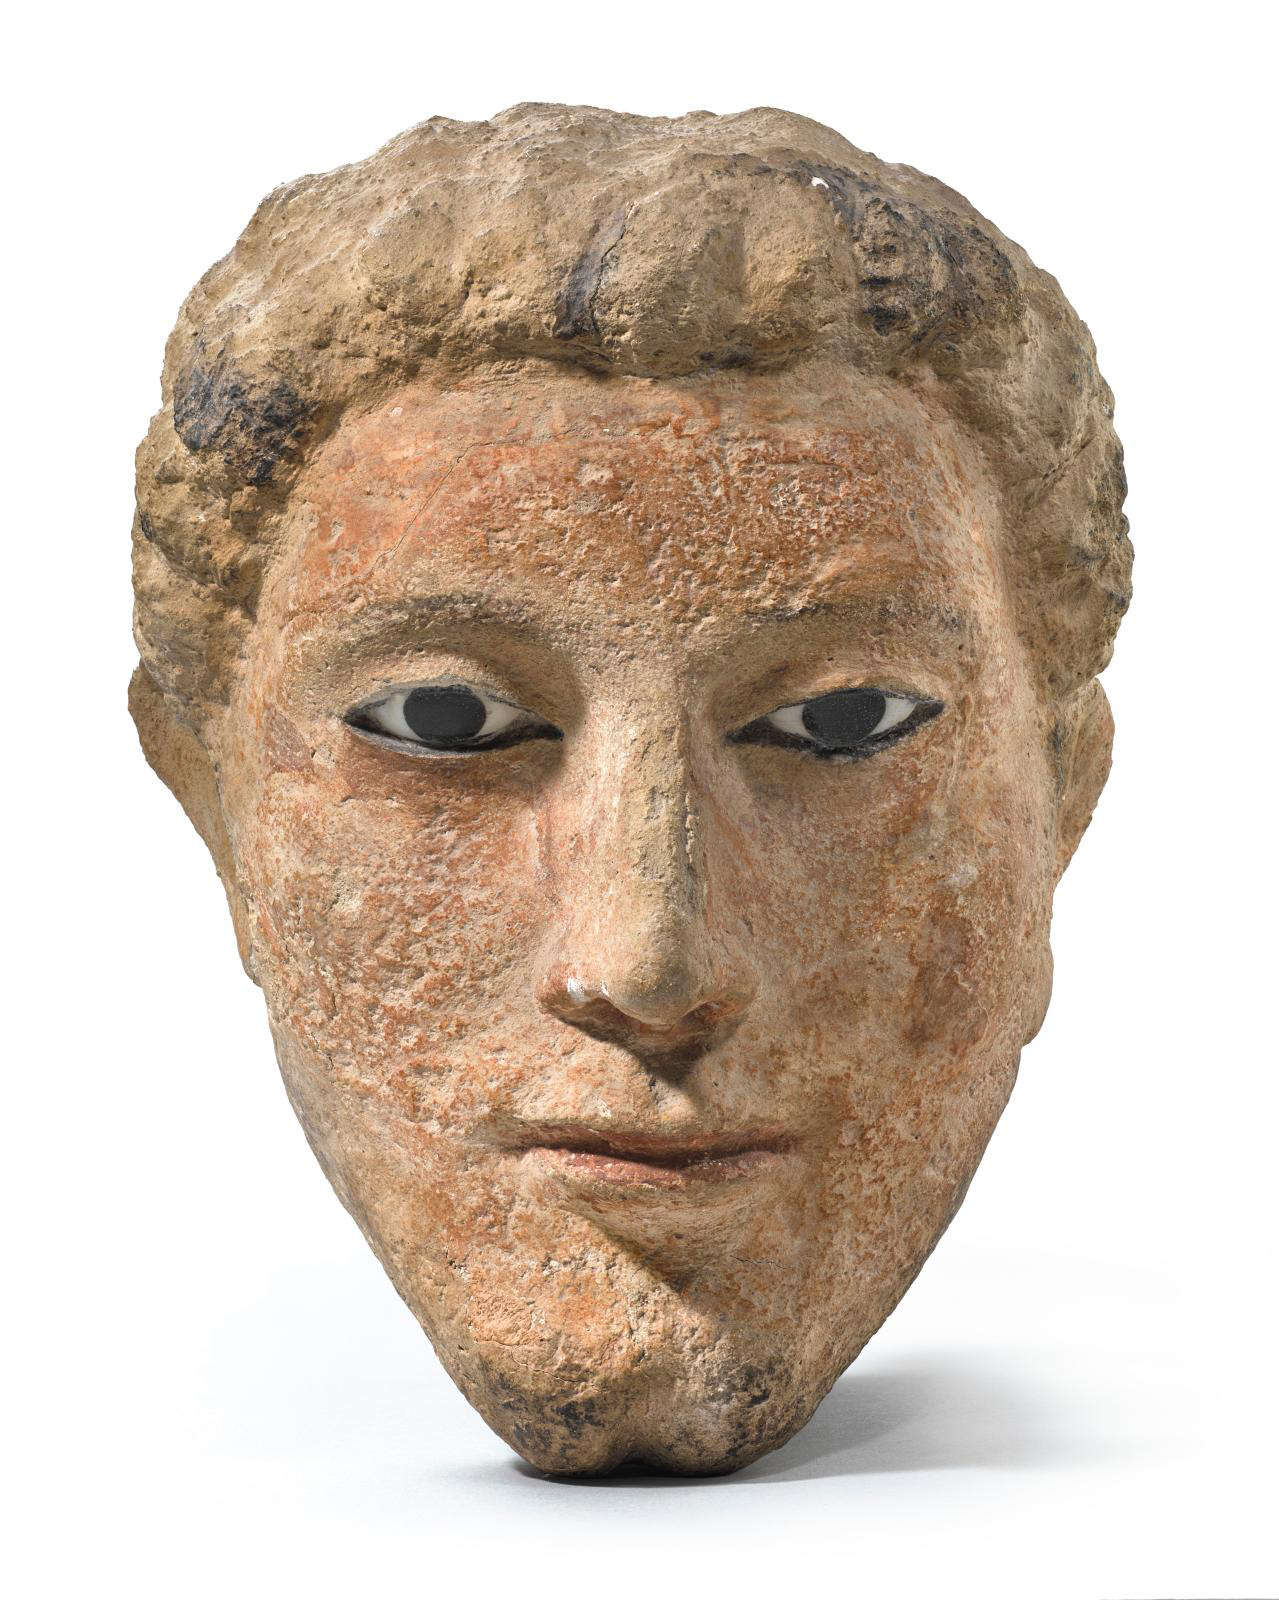 Middle Egypt, male funerary mask, Roman period, 1st-2nd centuries, painted stucco and glass inlay, traces of polychrome, 22 x 18 x 13 cm/8